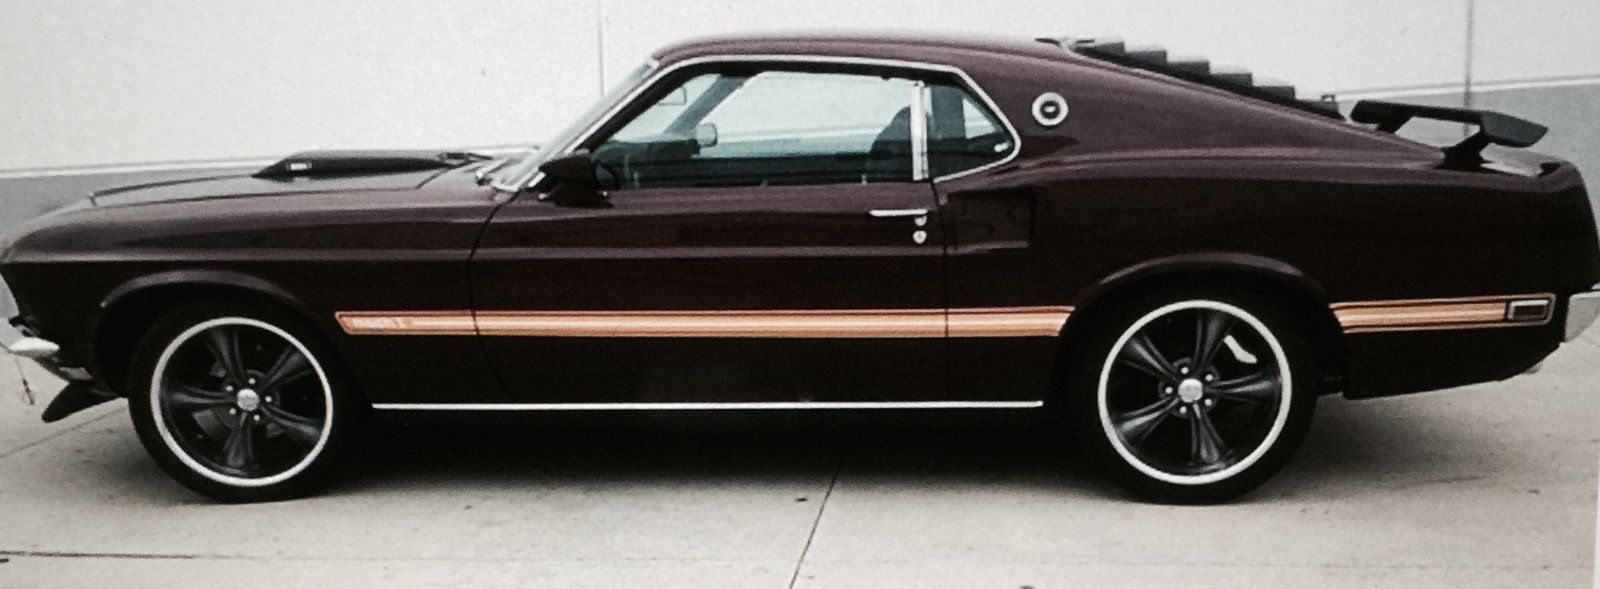 mach 1 for sale used ford mach 1 mustangs for sale autos post. Black Bedroom Furniture Sets. Home Design Ideas